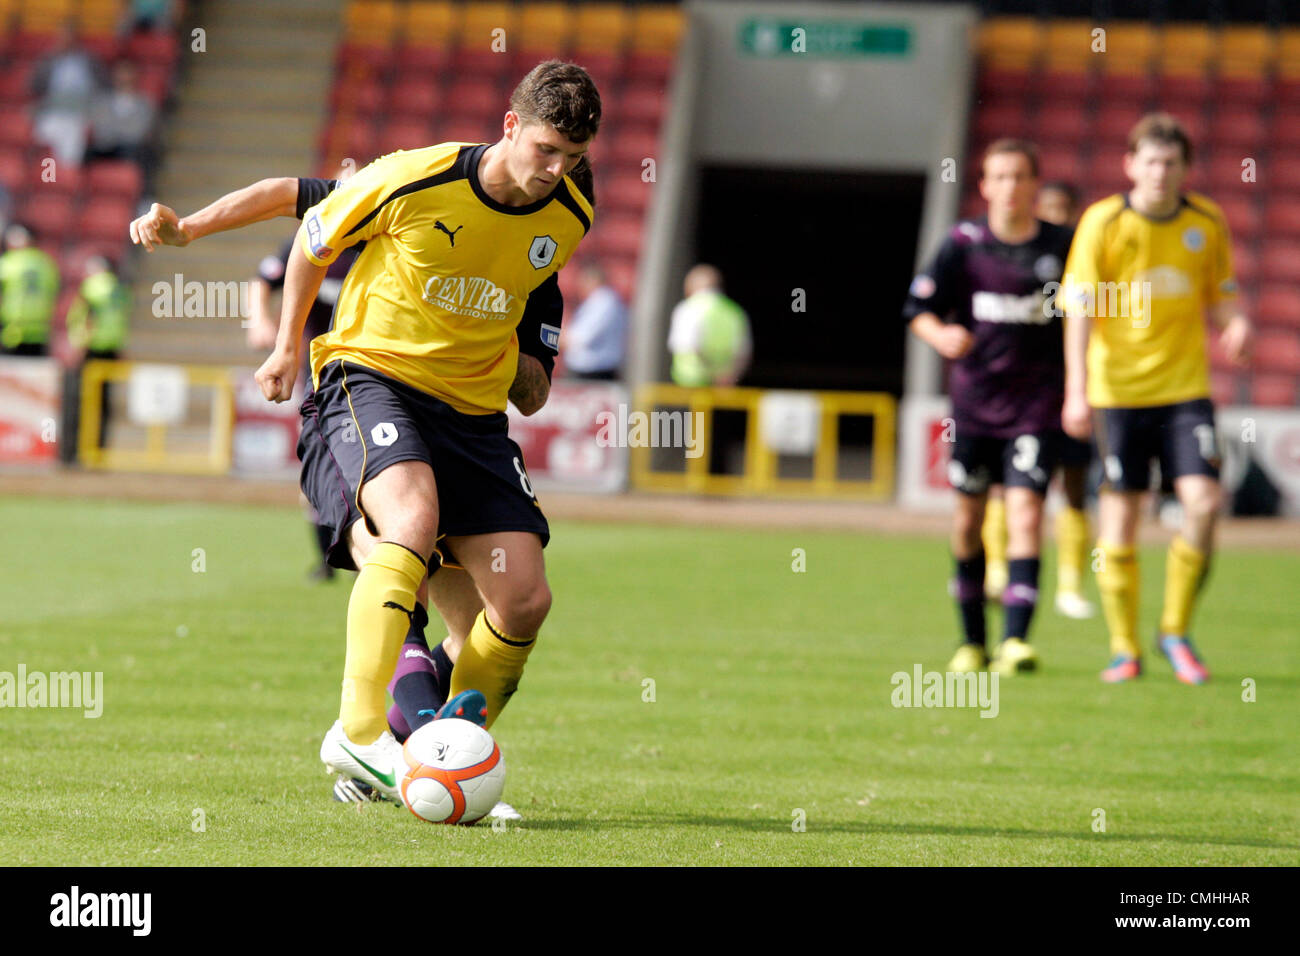 11th Aug 2012. 11.08.2012 Glasgow, Scotland. 8 Stewart Murdoch in action during the Scottish Football League Division - Stock Image